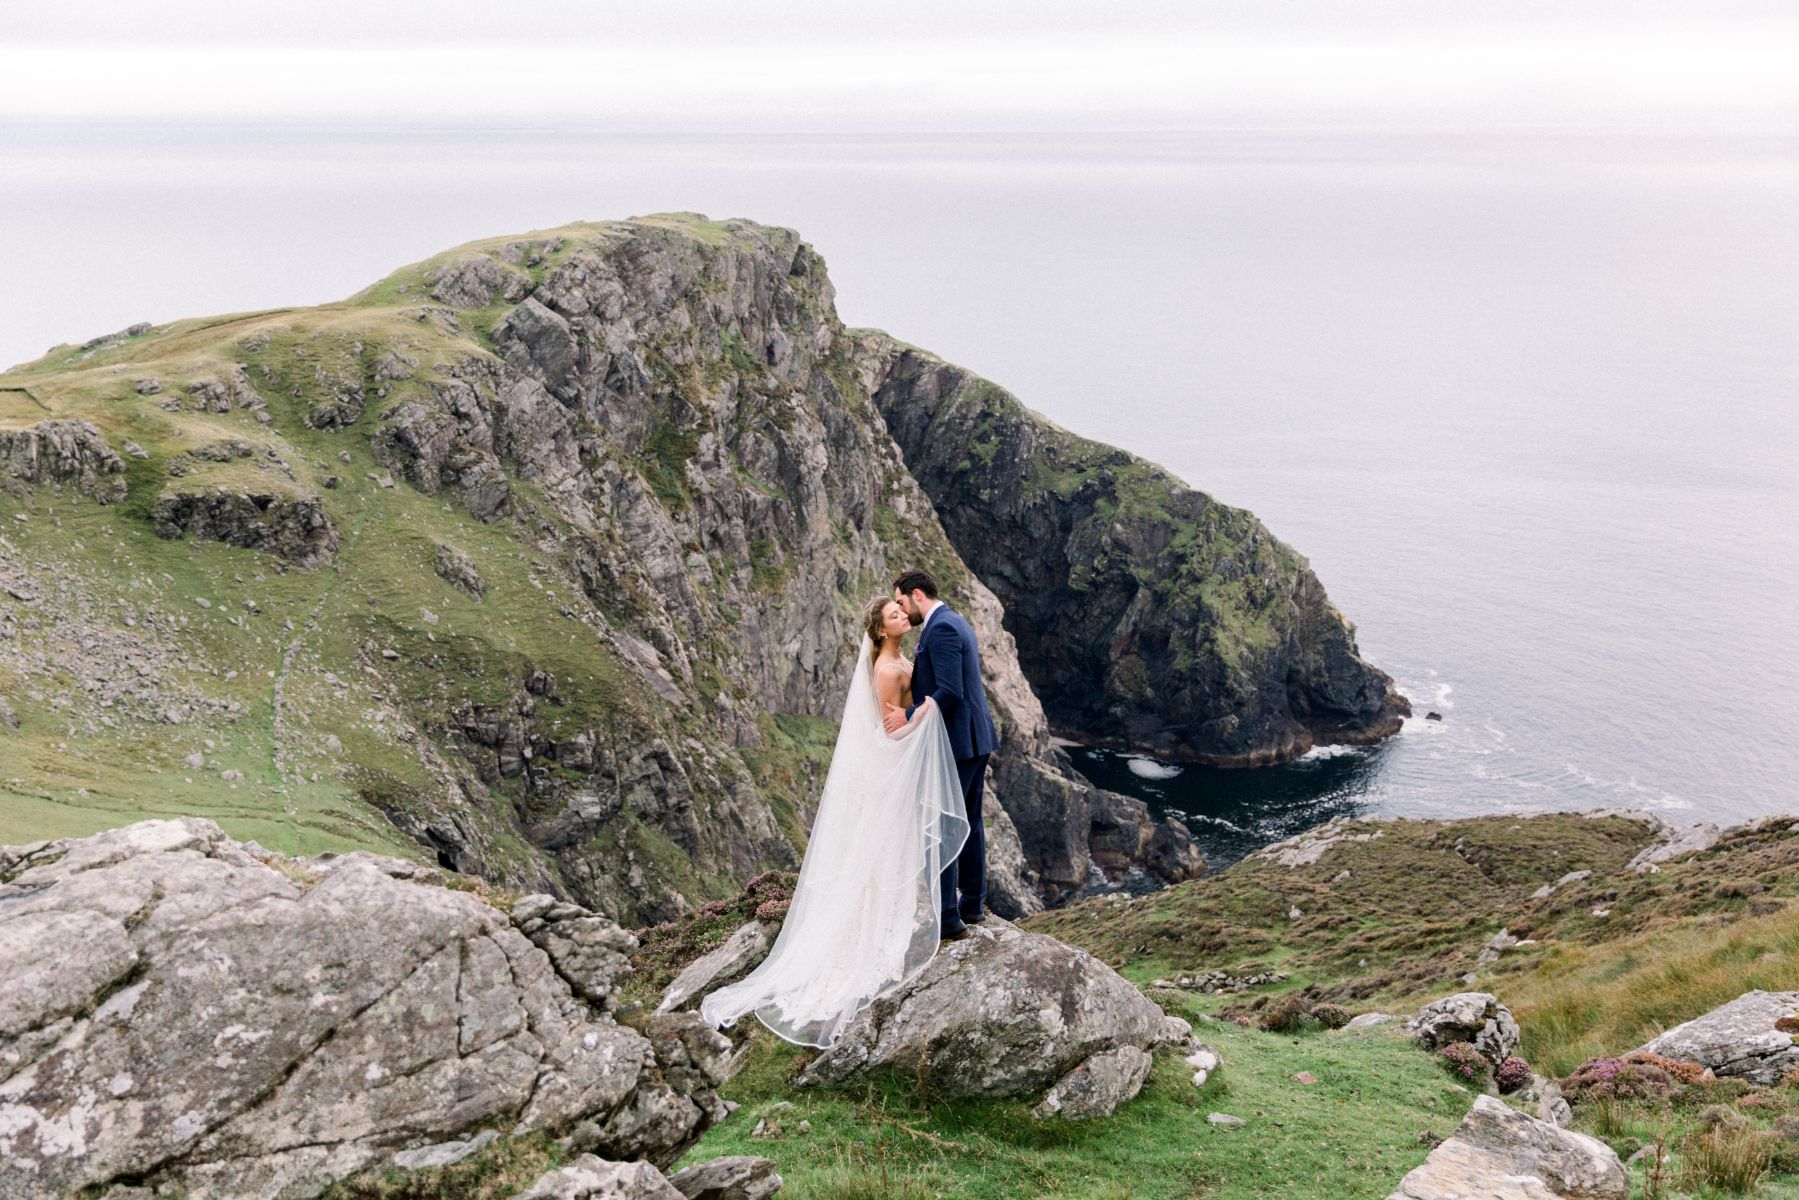 Bride and Groom embracing overlooking the sea.